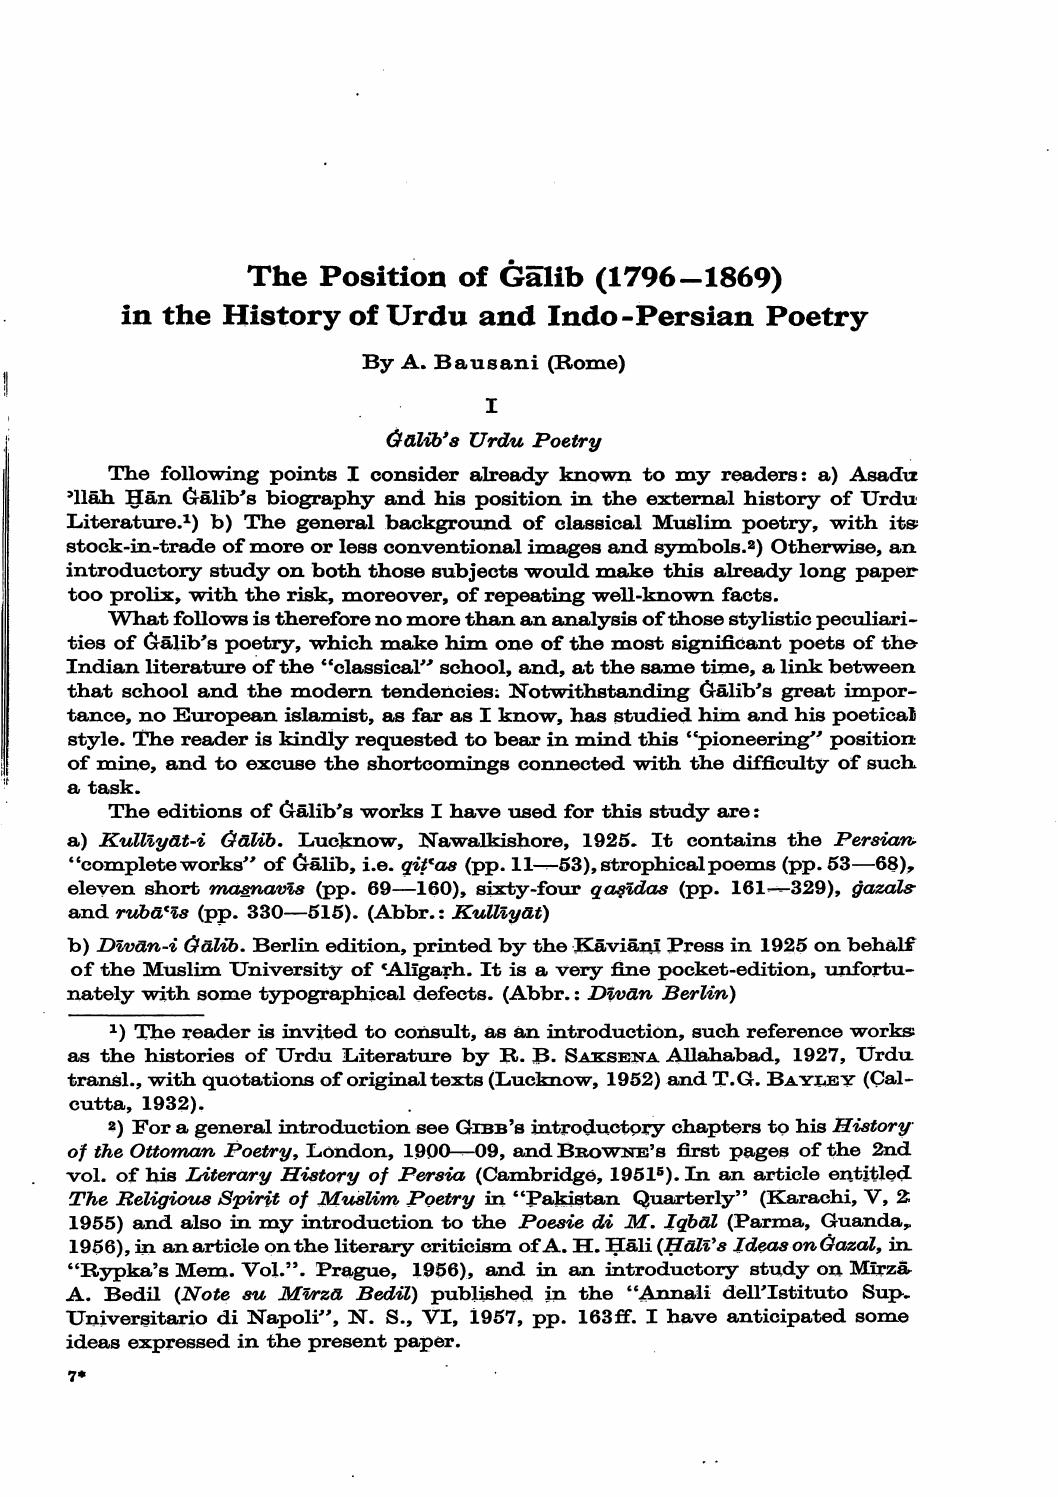 The Position of Gälib (1796-1869) in the History of Urdu and